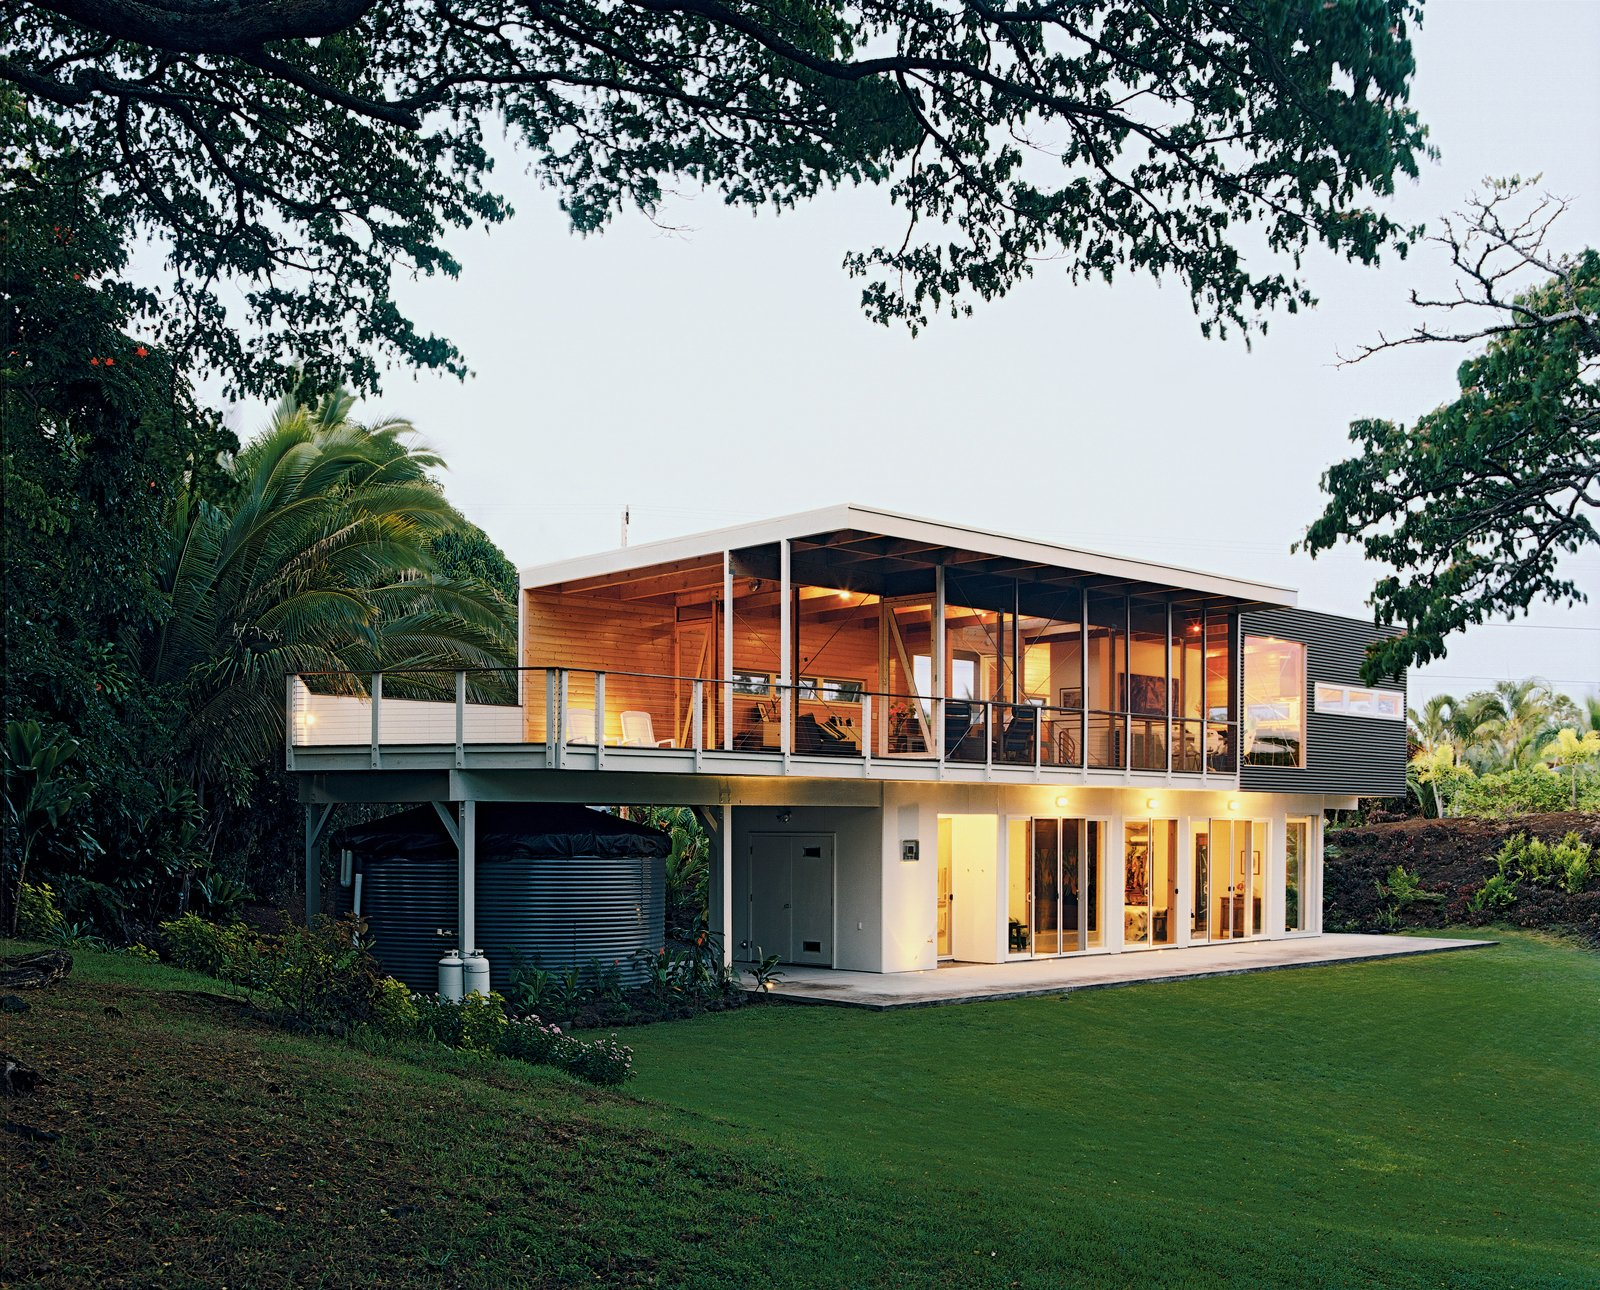 Grass, Exterior, Metal, and House Ipe decking extends from the actual deck to the home's interior.  Exterior House Grass Photos from Lava Flow 4, The Big Island